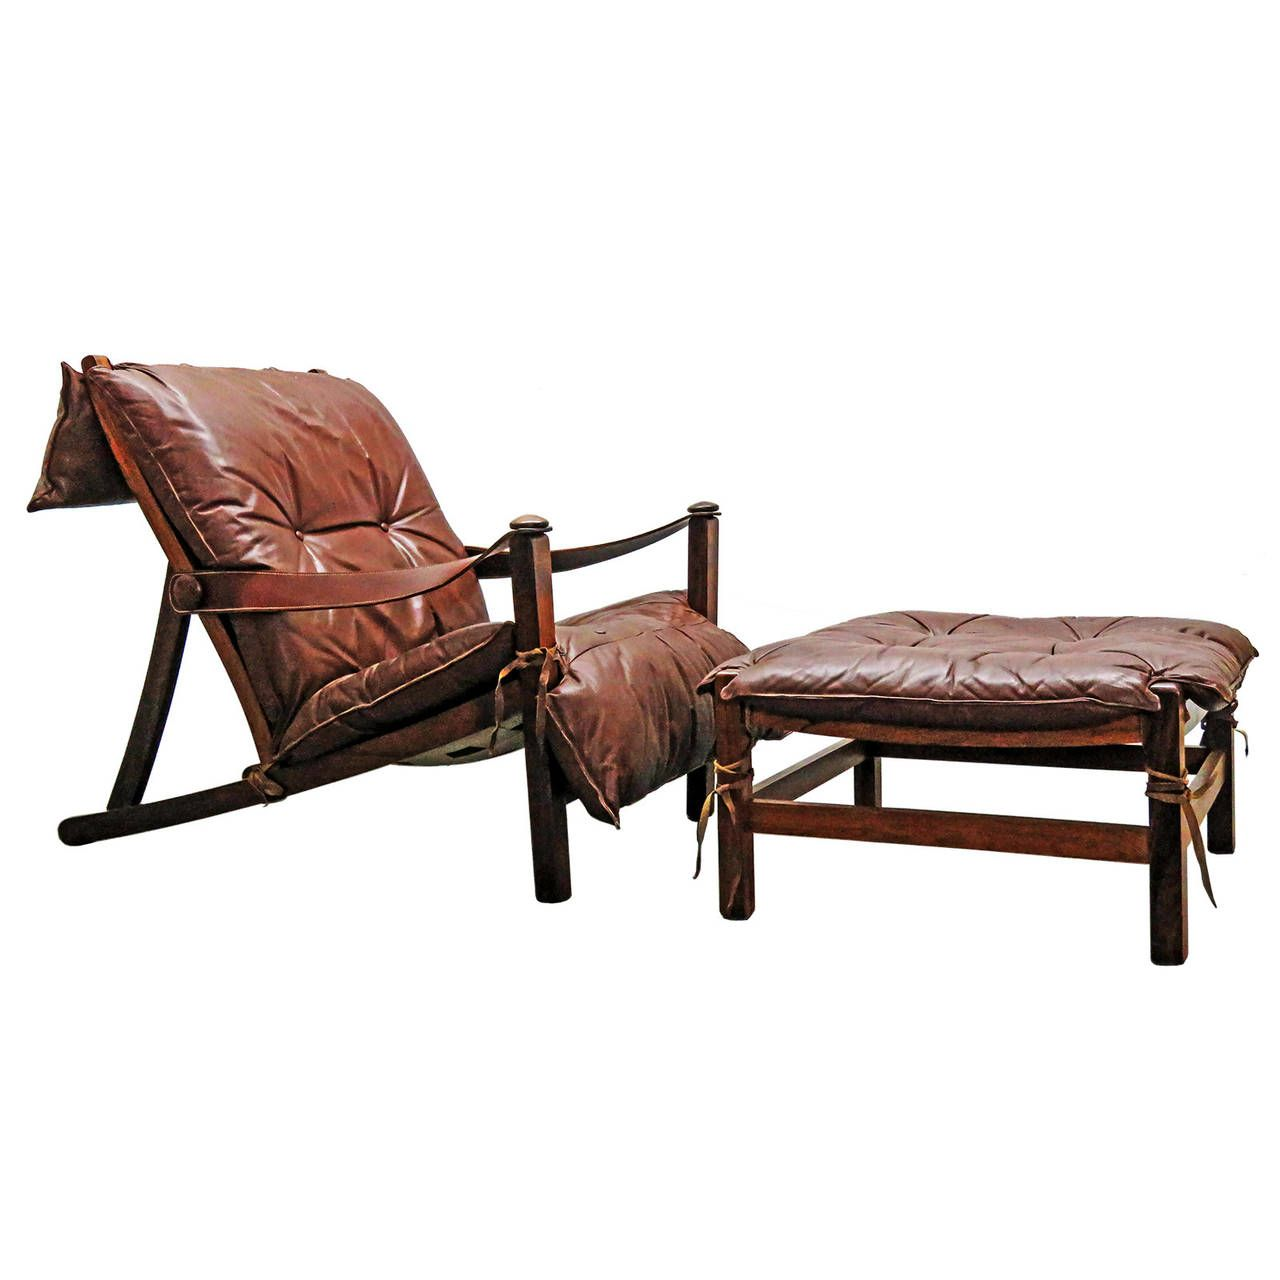 Danish Rosewood Lounge Chair with Ottoman From a unique